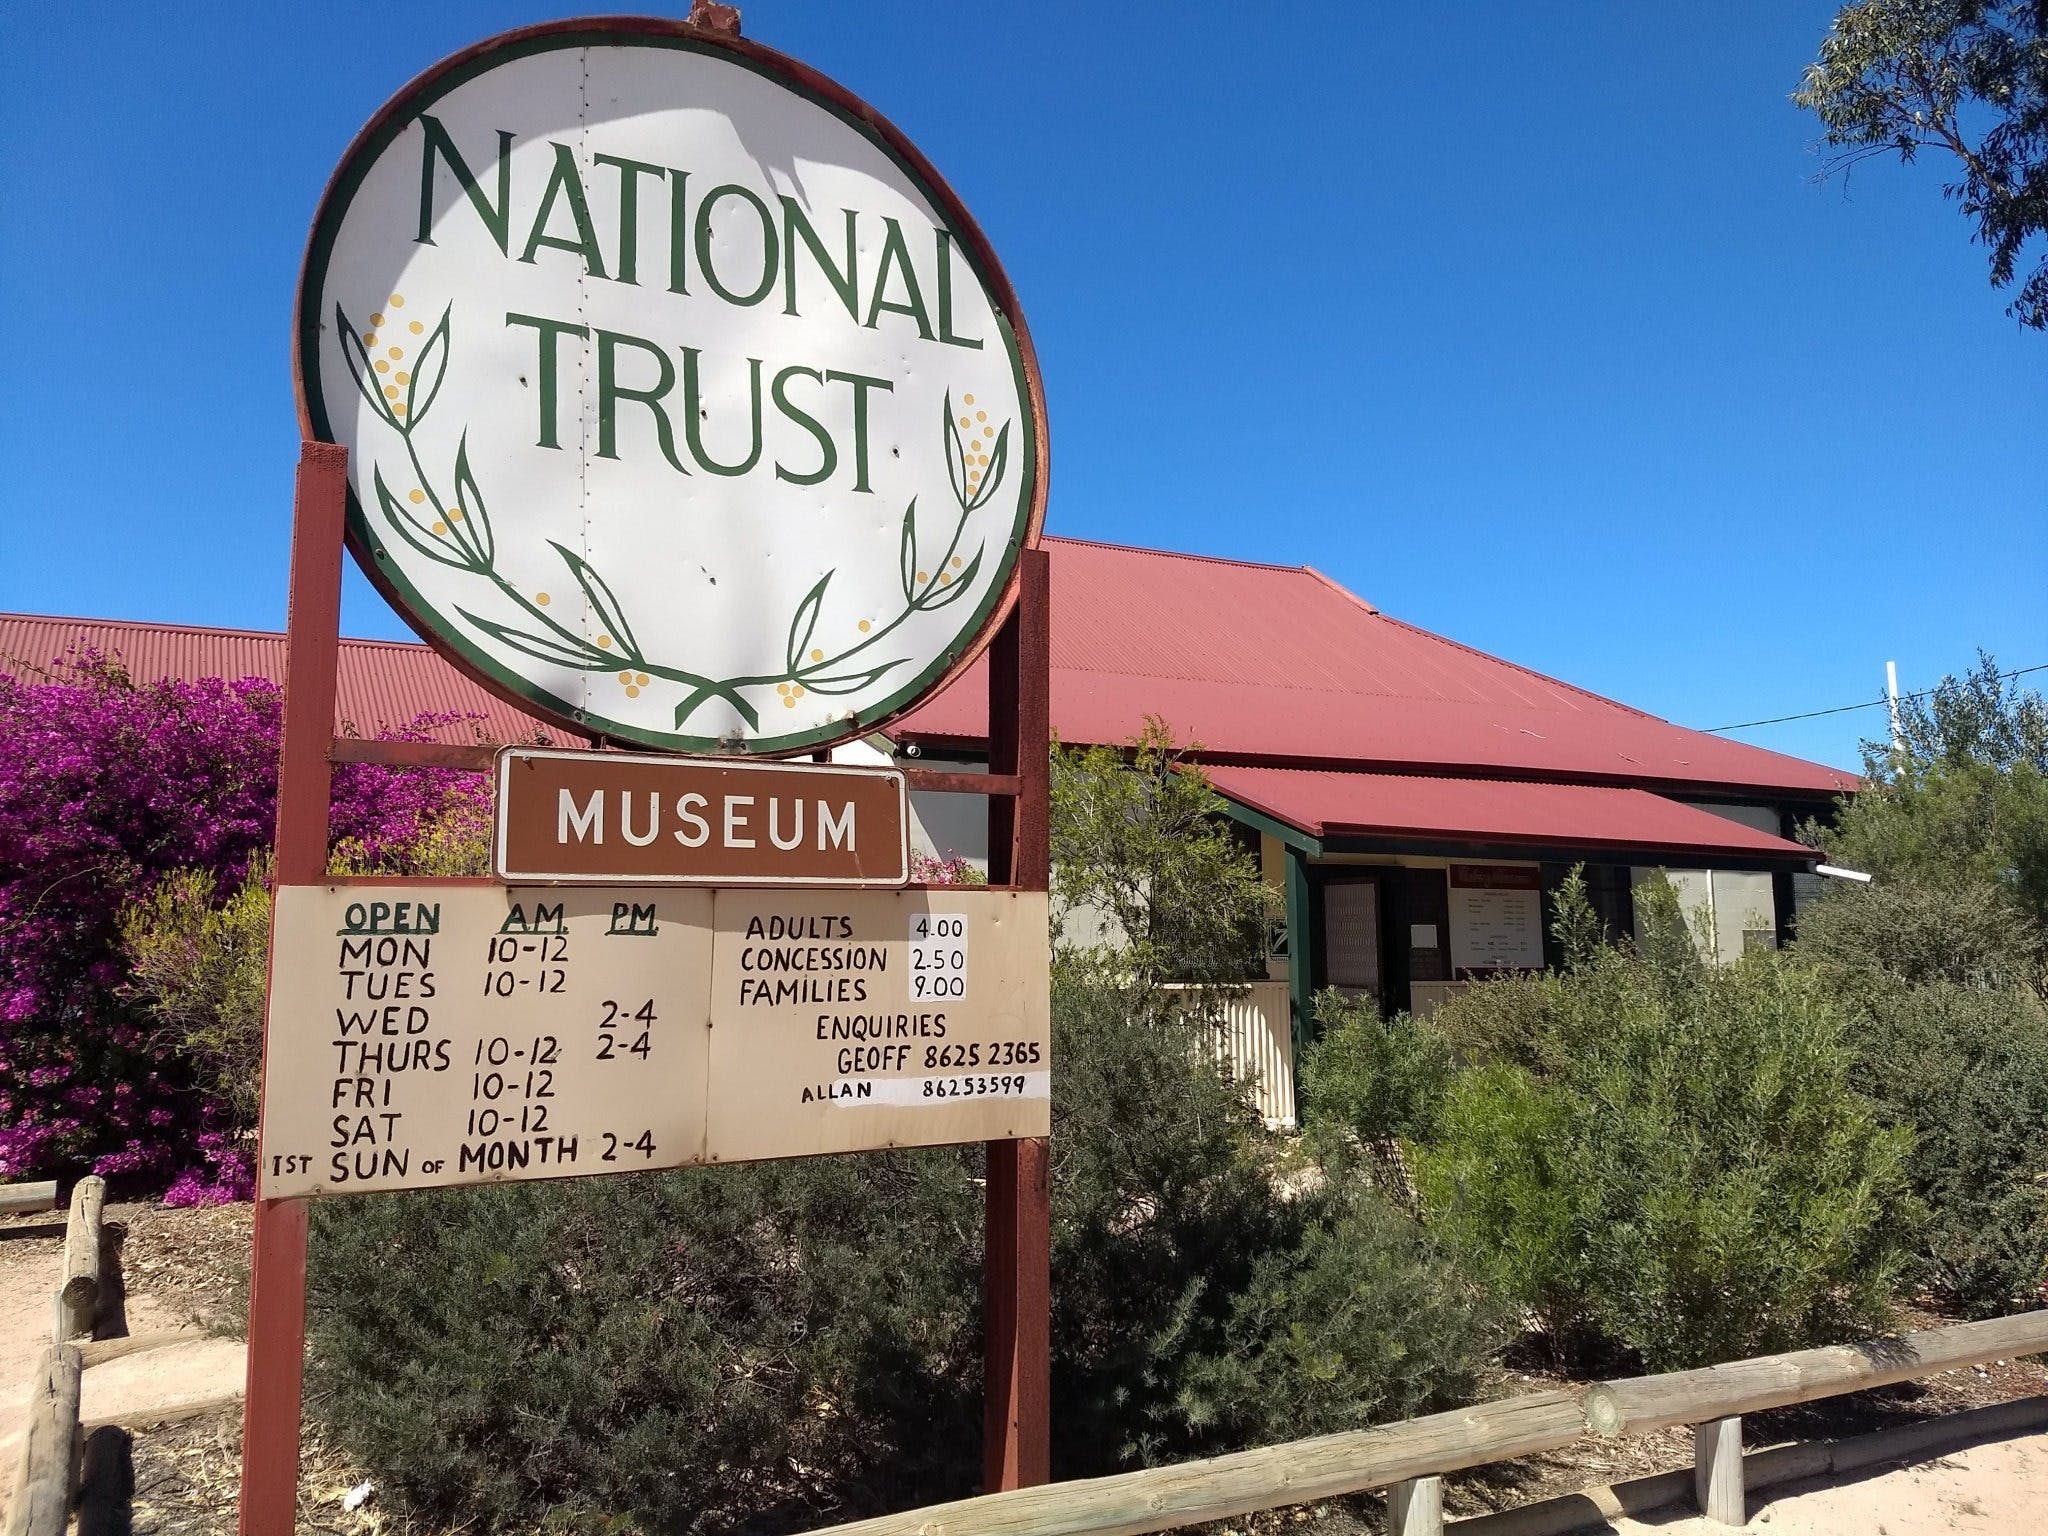 Ceduna National Trust Musuem - New South Wales Tourism